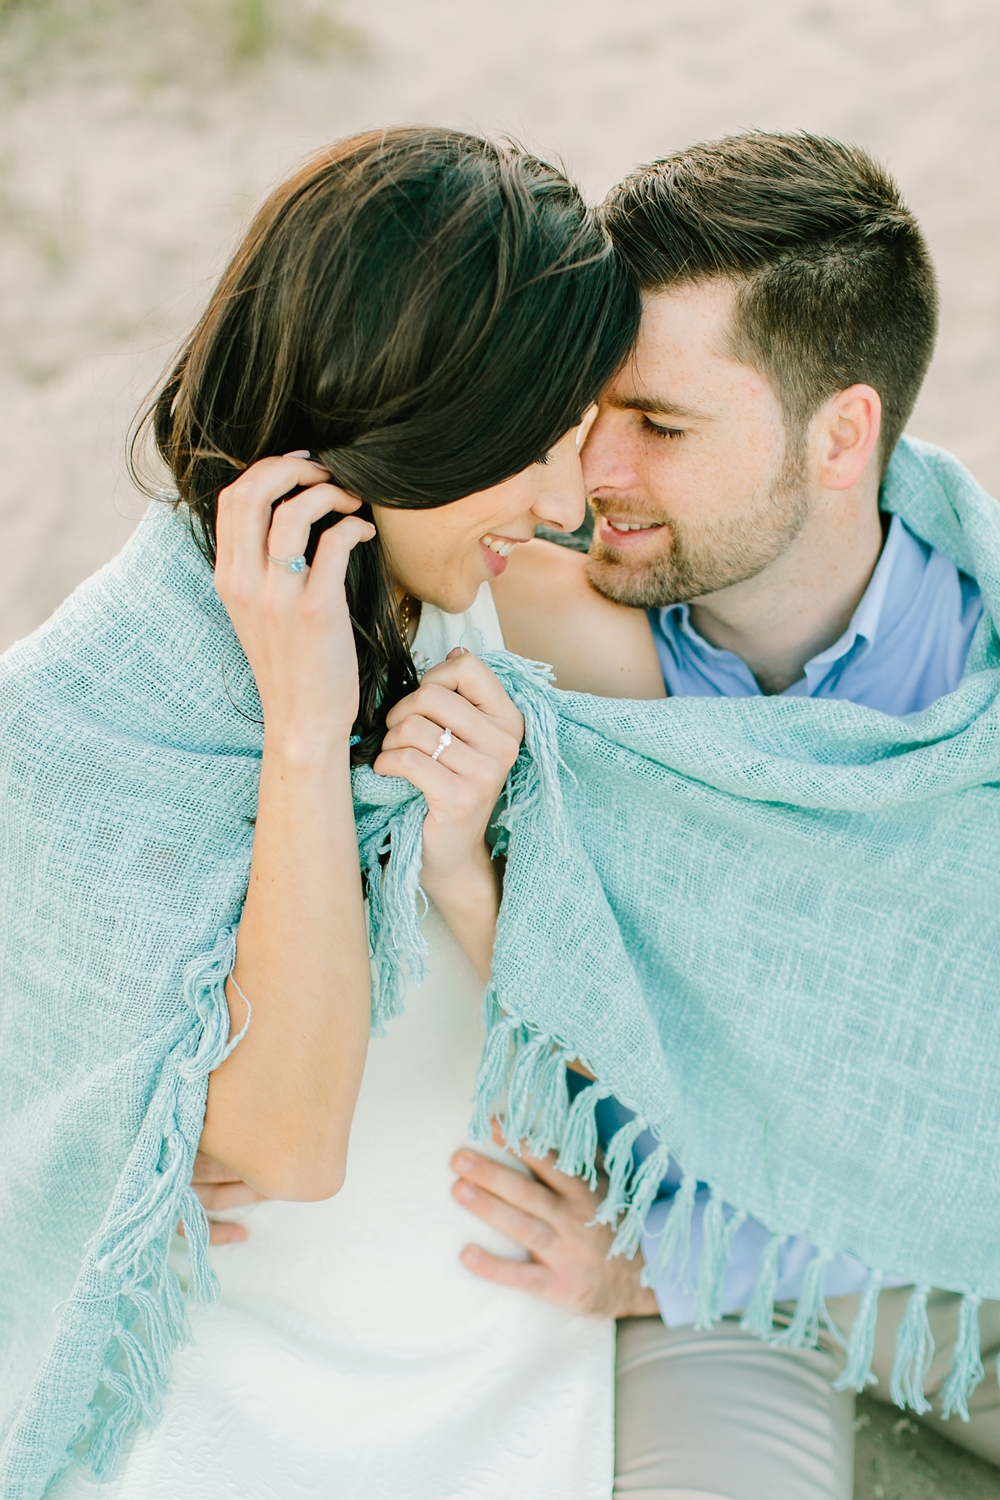 stone_harbor_new_jersey_engagement_phots_0014.jpg